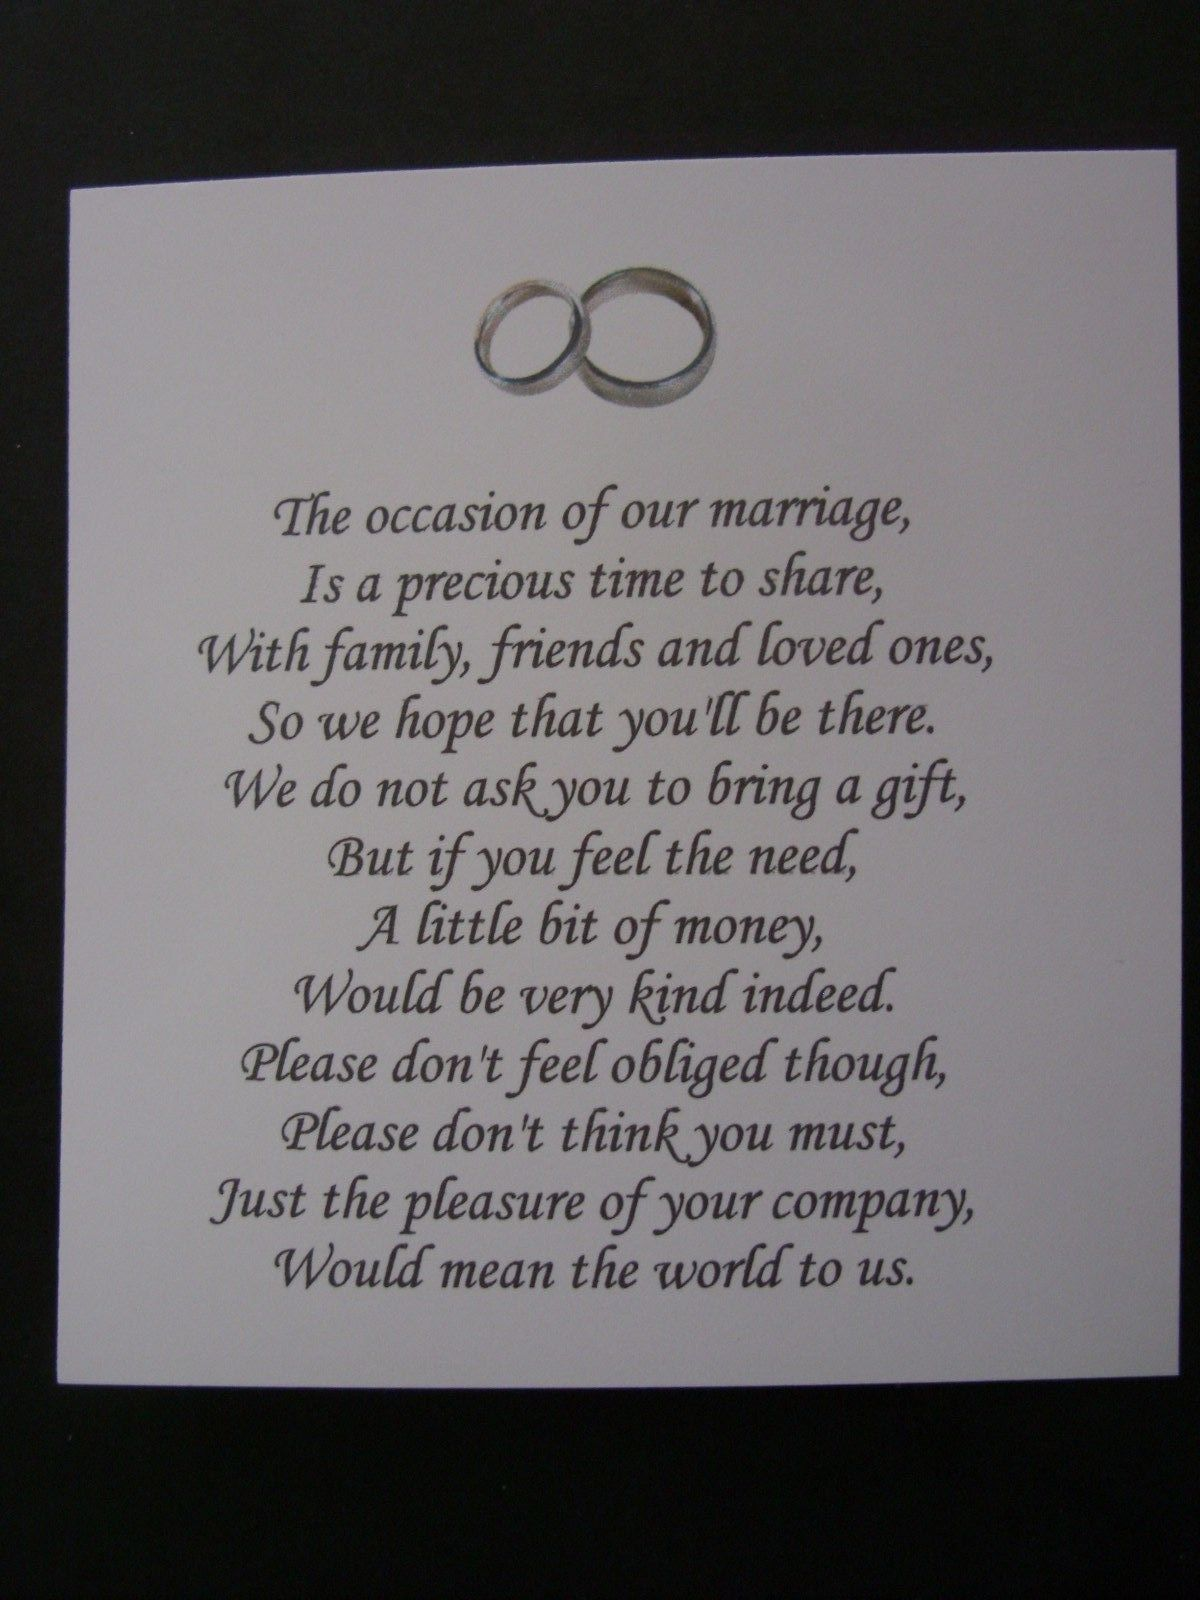 20 Wedding Poems Asking For Money Gifts Not Presents Ref No 13 Wedding Poems Wedding Poems For Money Wedding Gift Money Poem